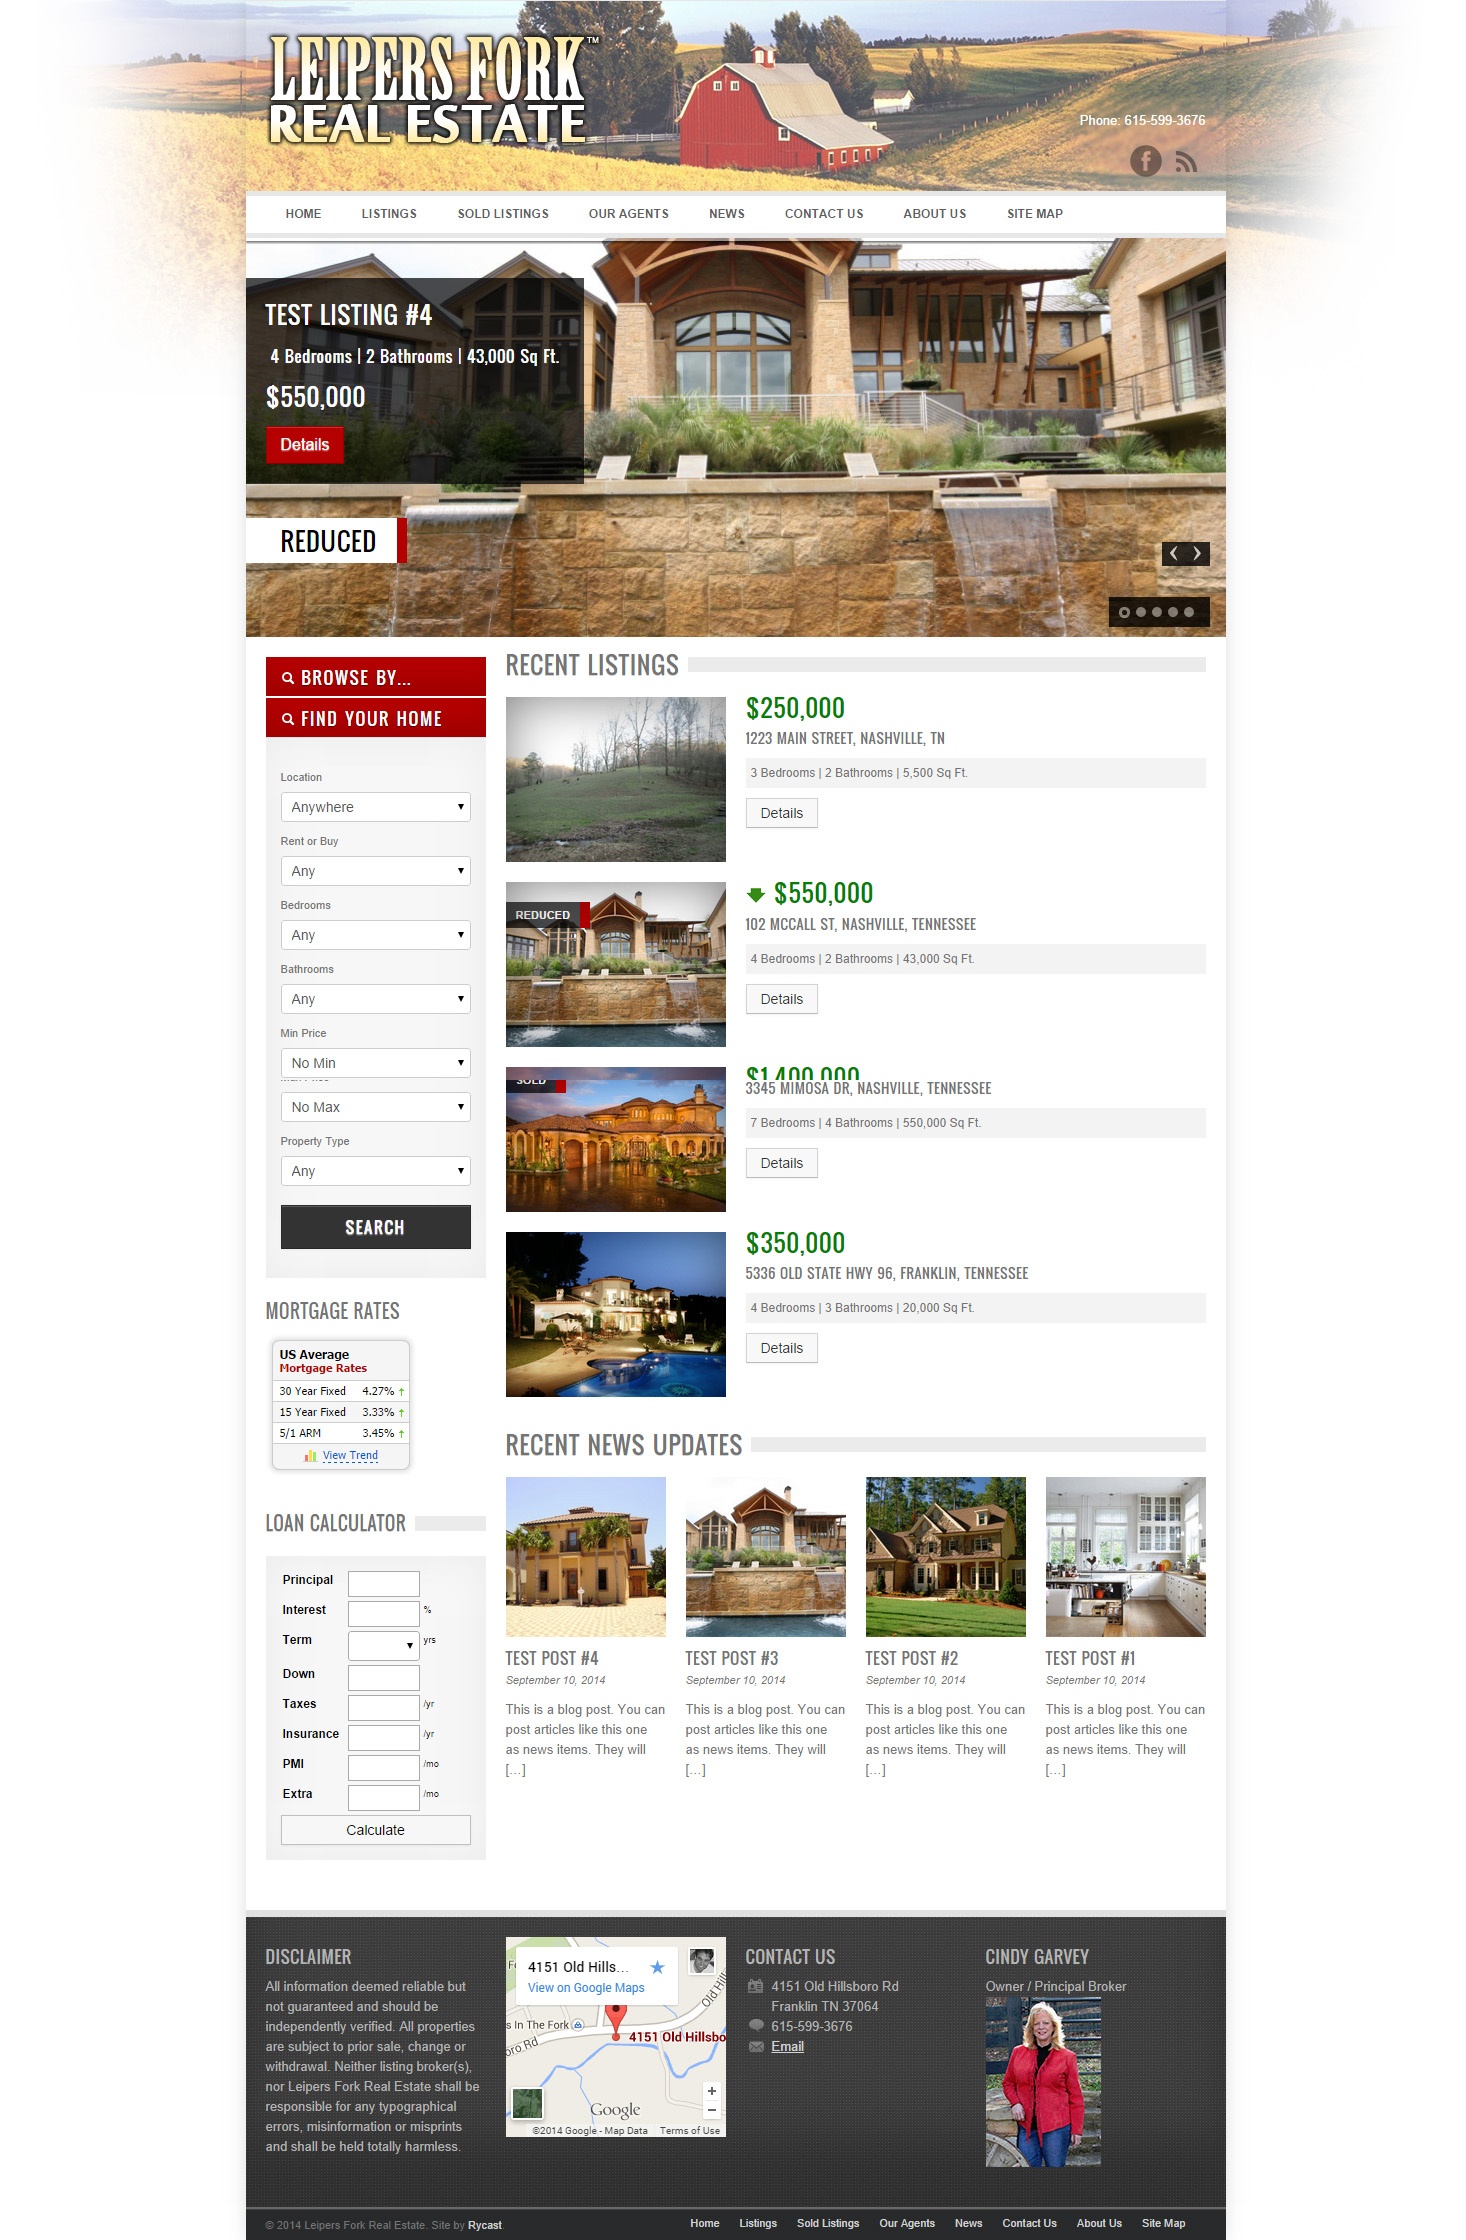 Leipers Fork Real Estate Home Page